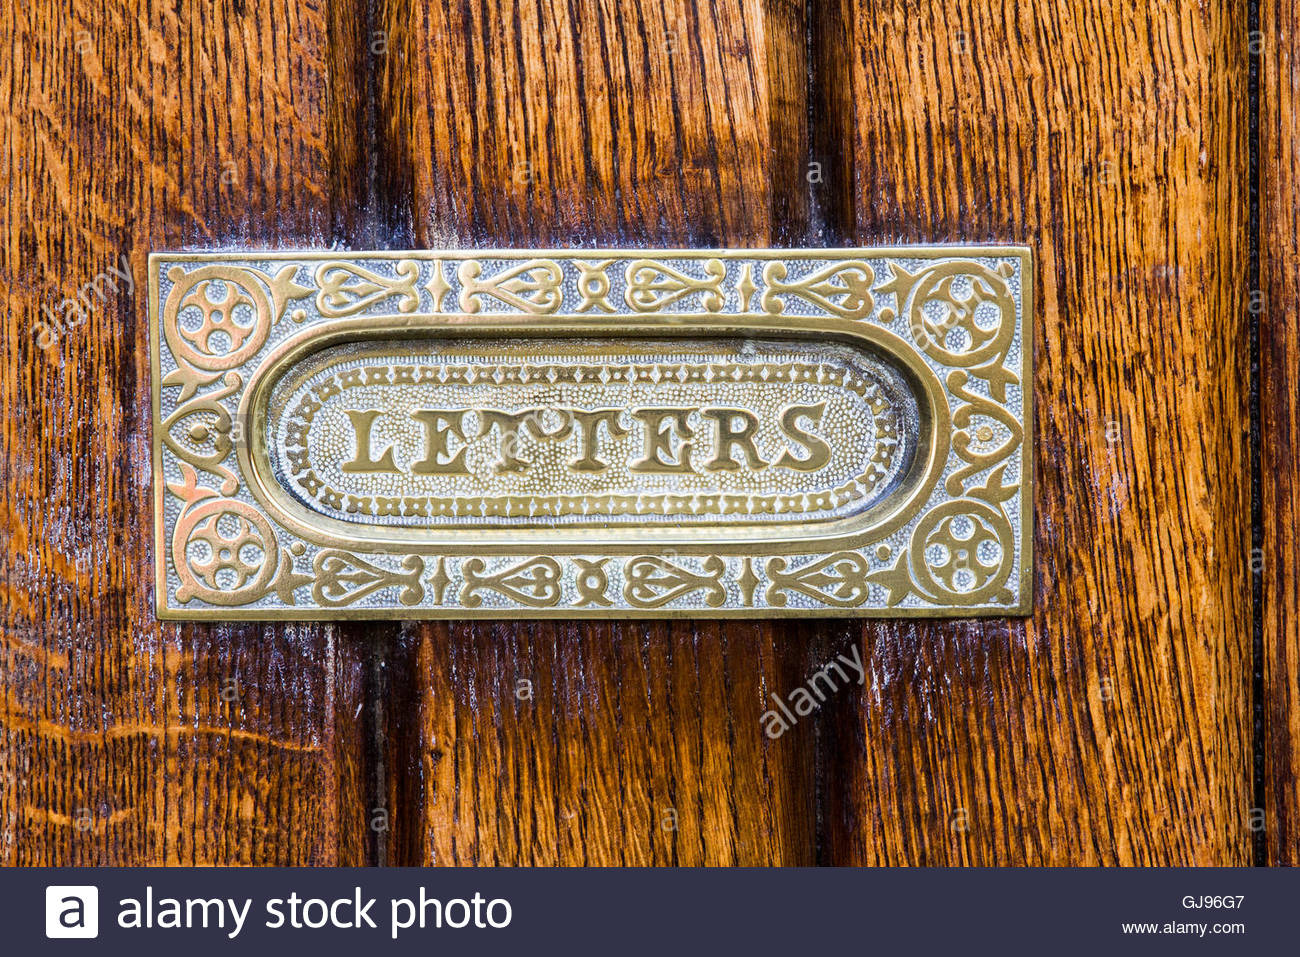 Brass letter box stock photos brass letter box stock images alamy close up of a vintage letter box in a wooden door stock image spiritdancerdesigns Image collections